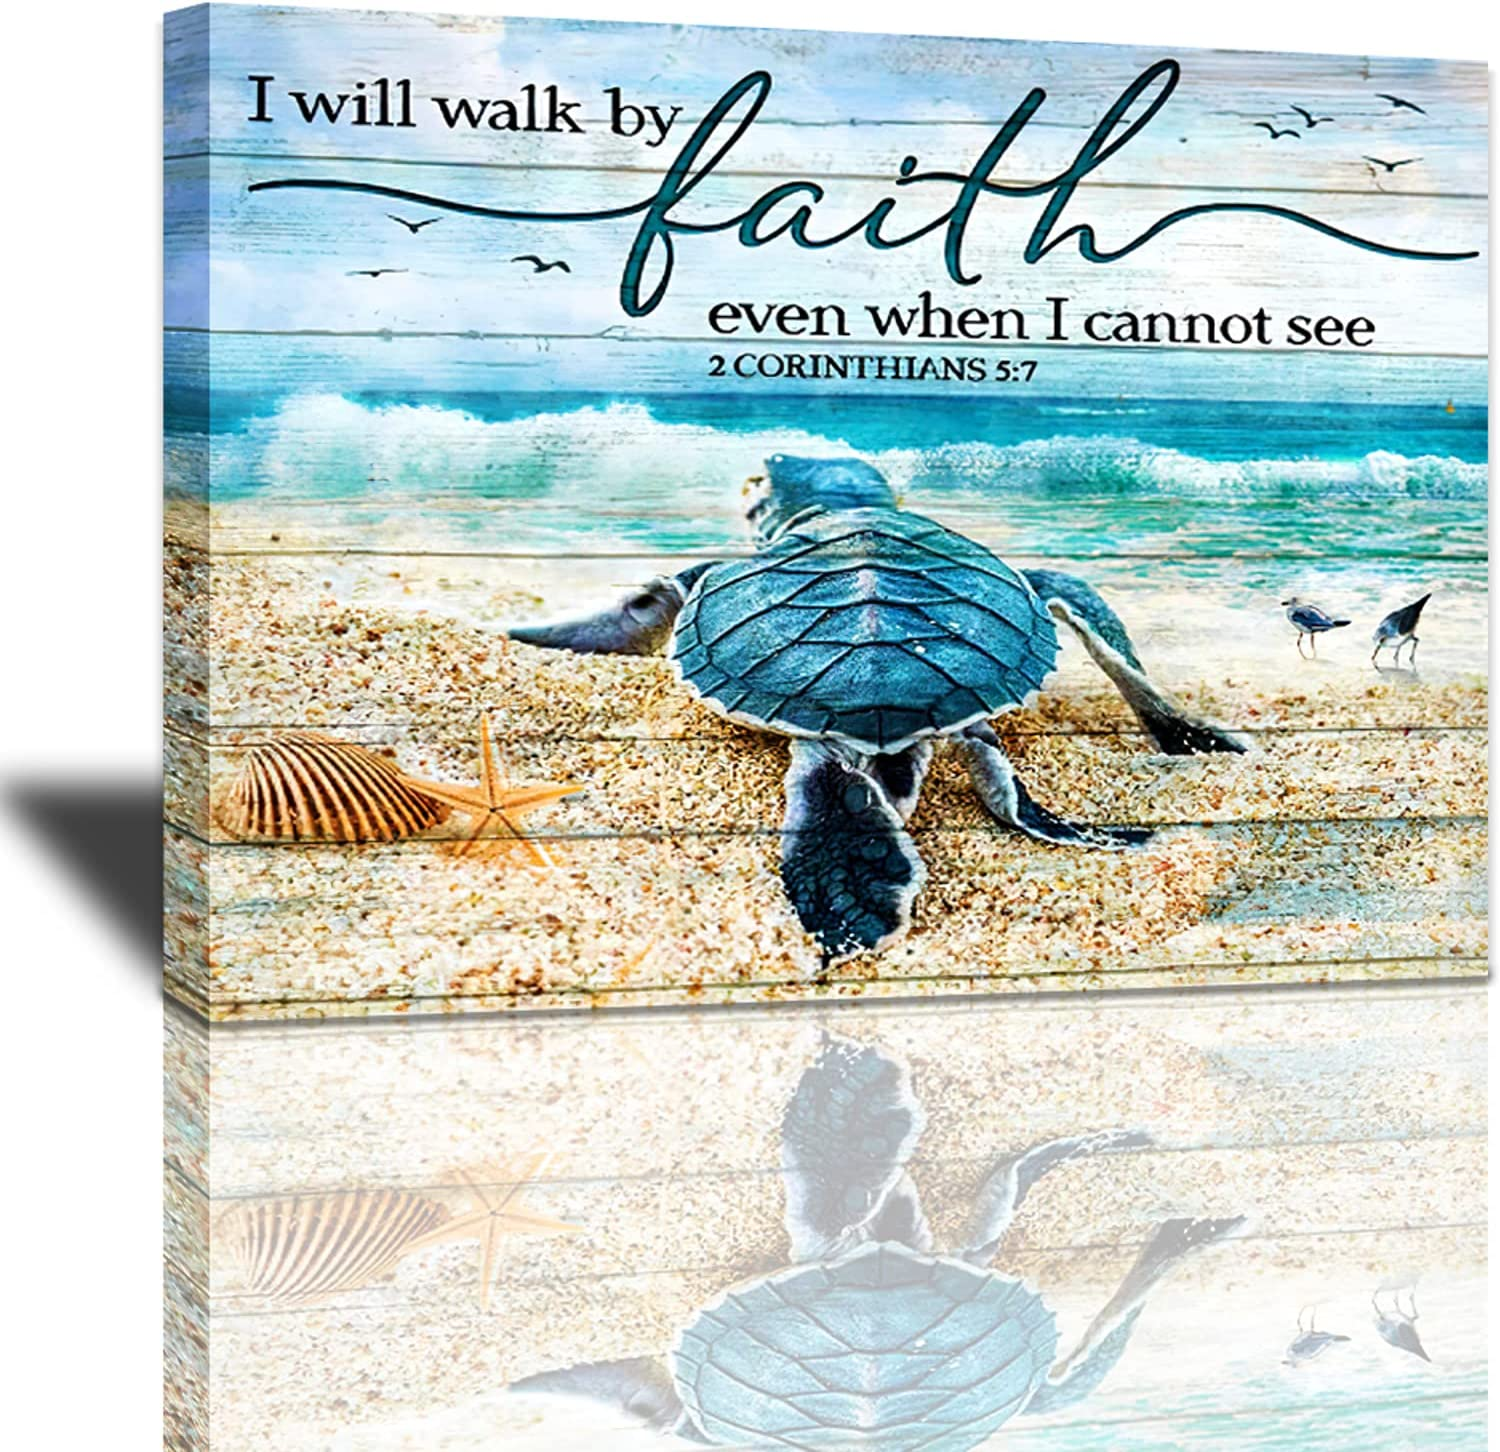 Tourrest Scripture Holy Bible Wall Art Teal Sea Turtle Walk by Faith Canvas Print Inspirational Quotes Framed Artwork Blue Ocean Beach Coast Scenery Poster Motivational Animal Large Wooden Wall Décor